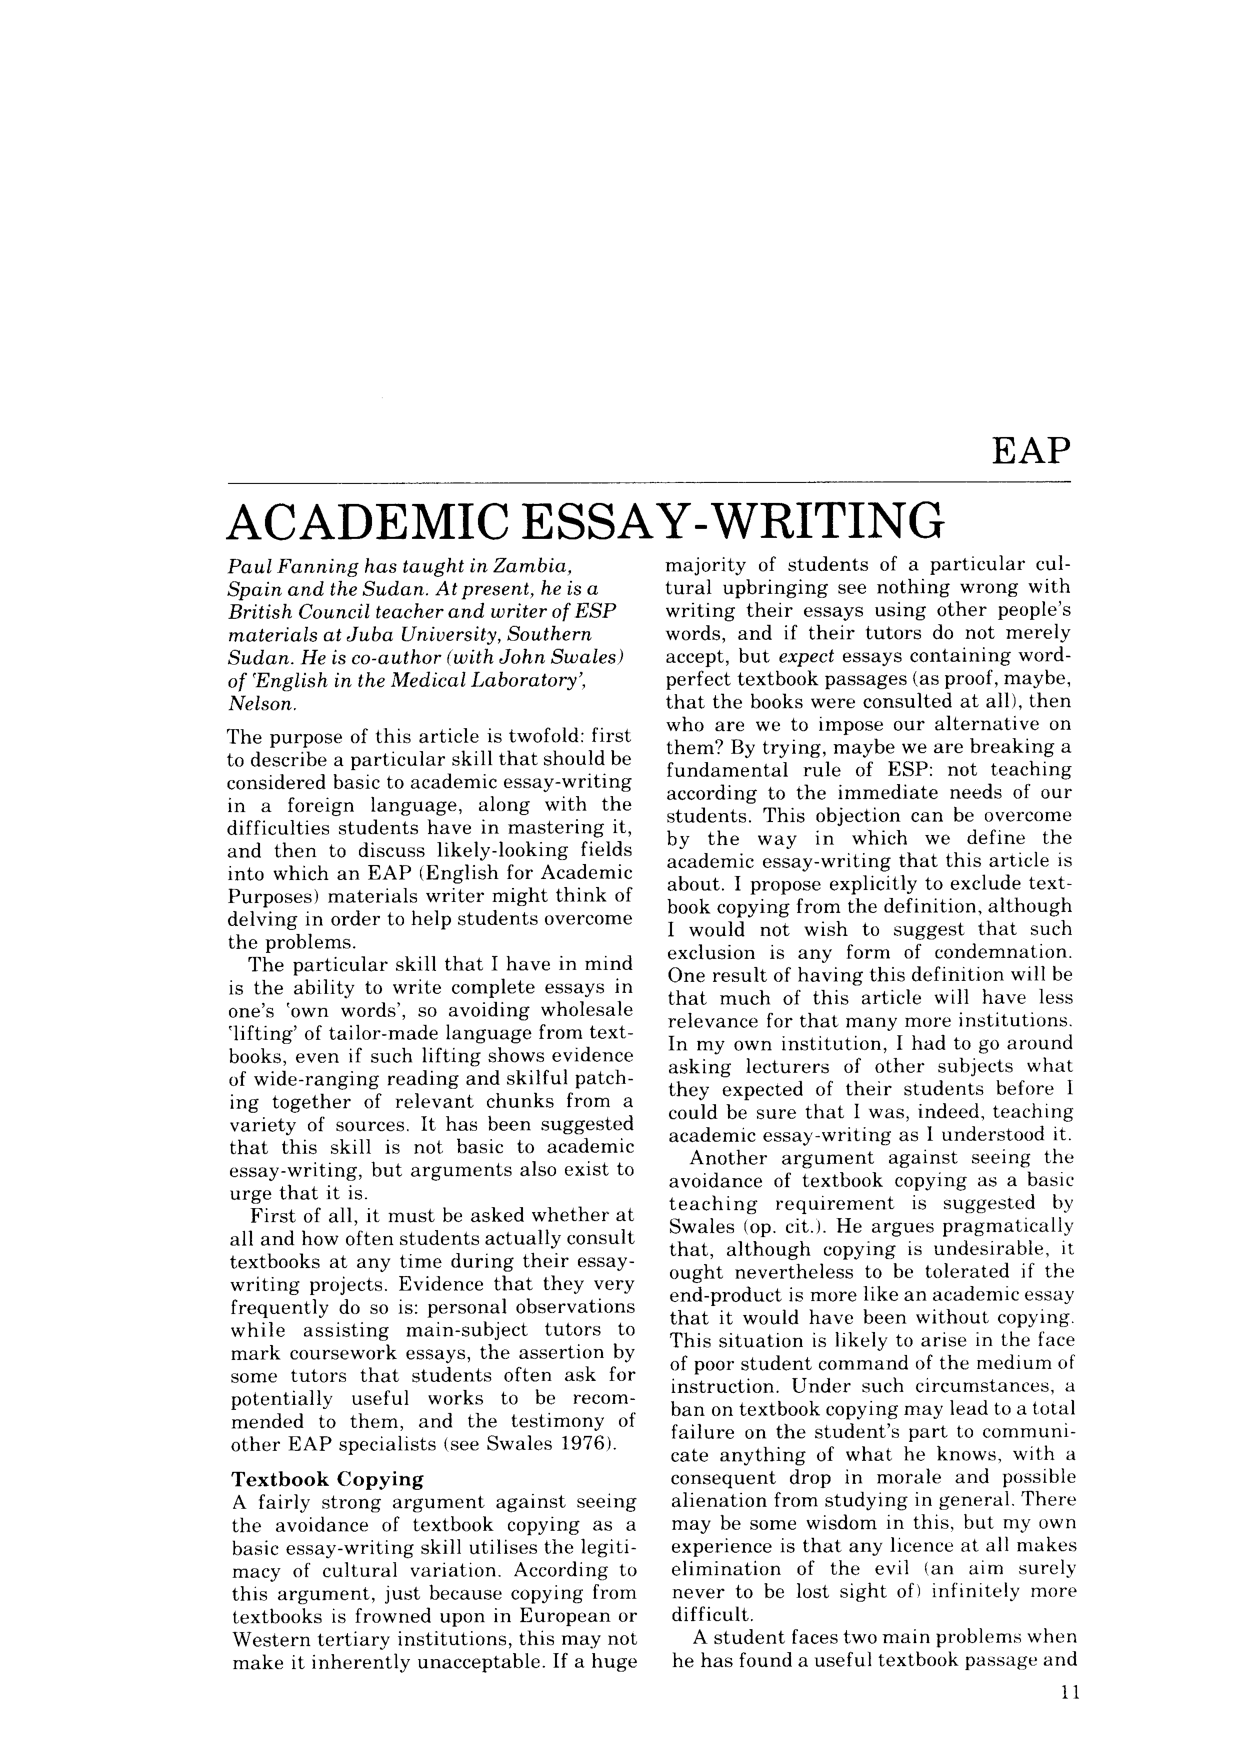 Academic essay write your